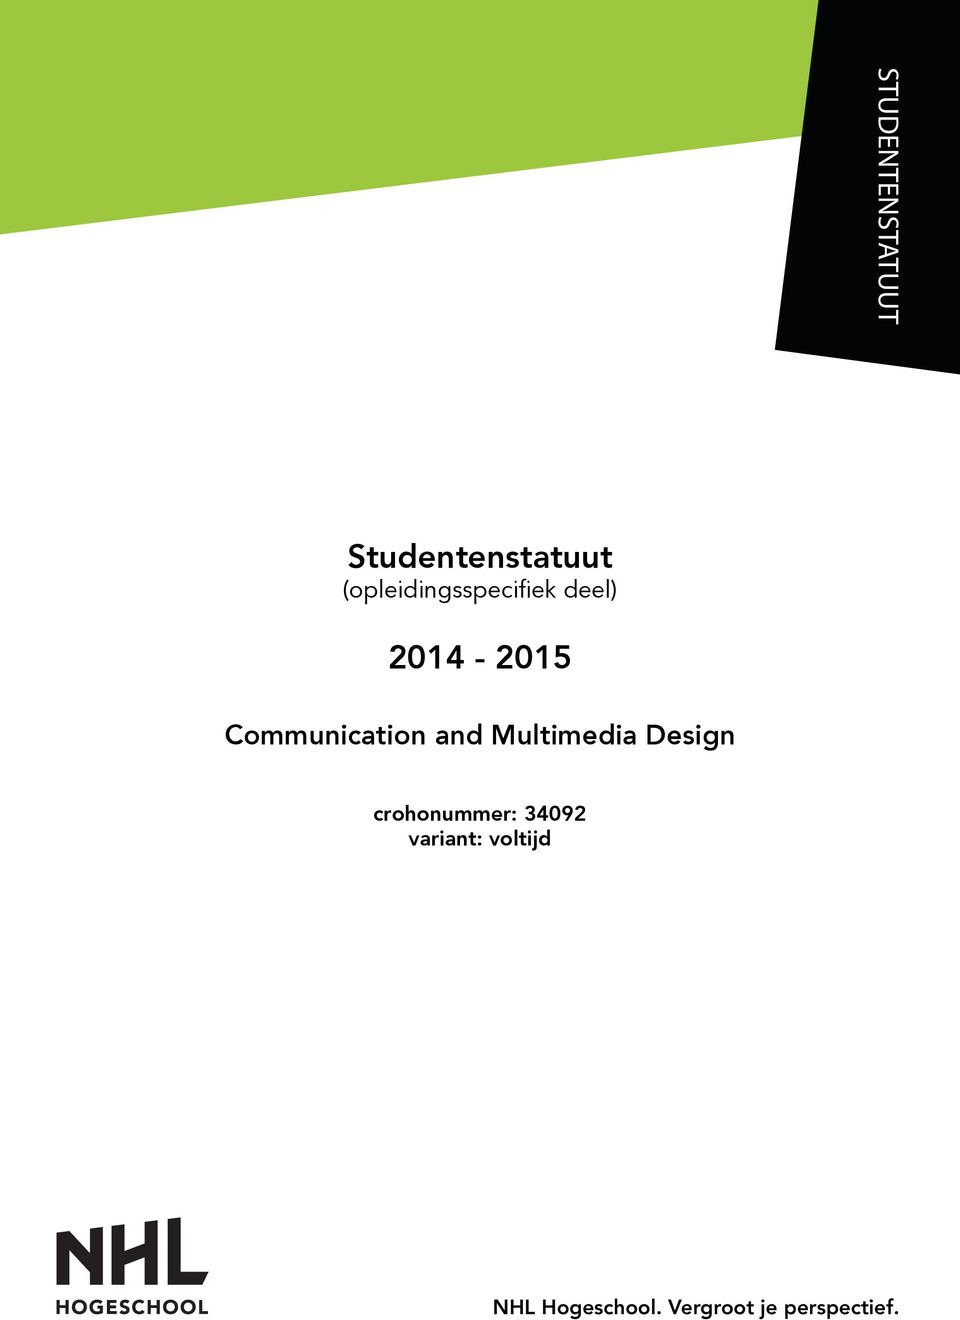 Communication and Multimedia Design